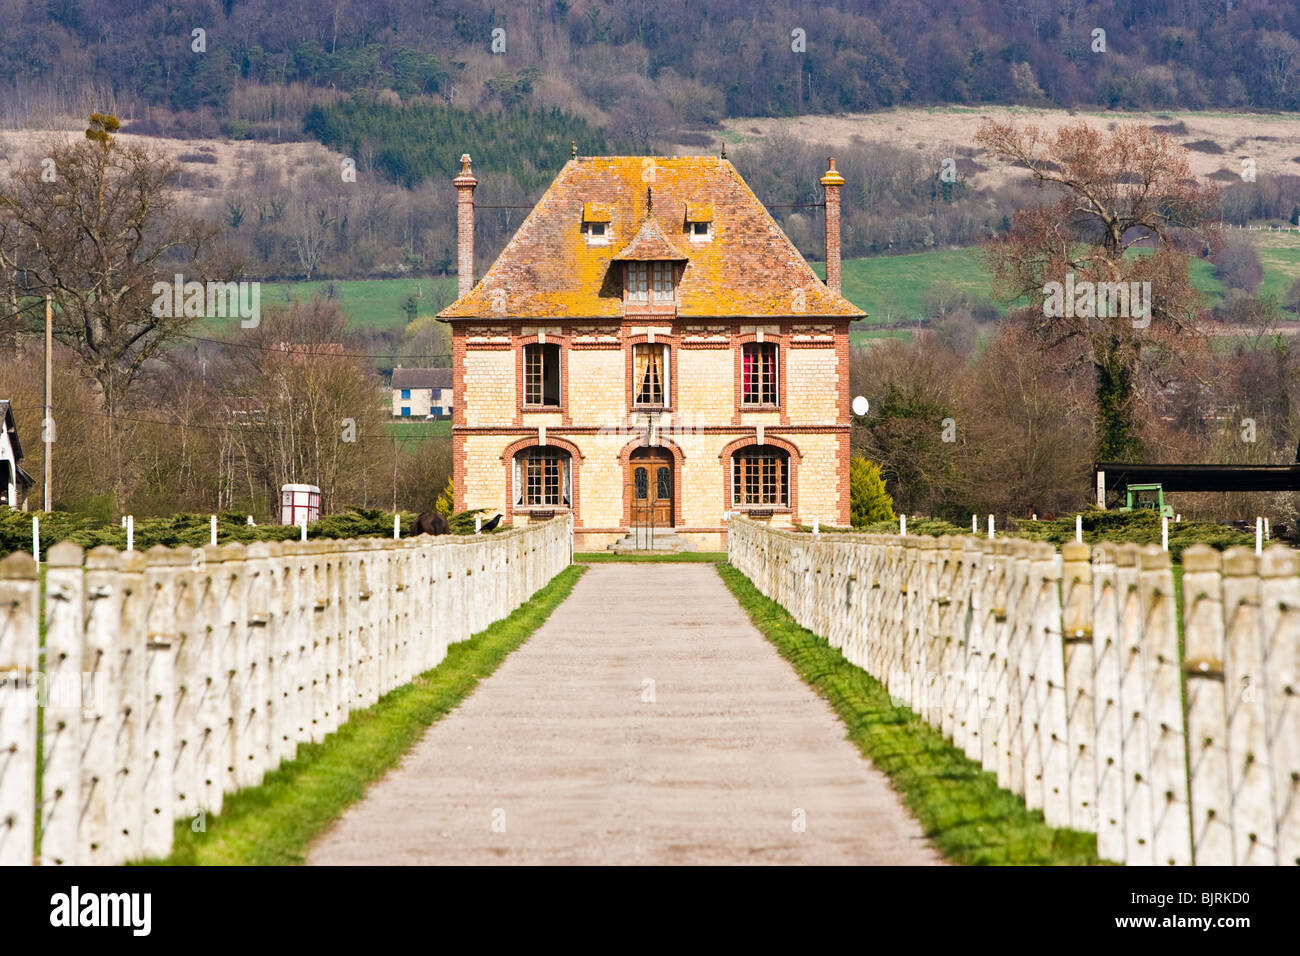 French Country House Calvados Normandy France Stock Photo Alamy